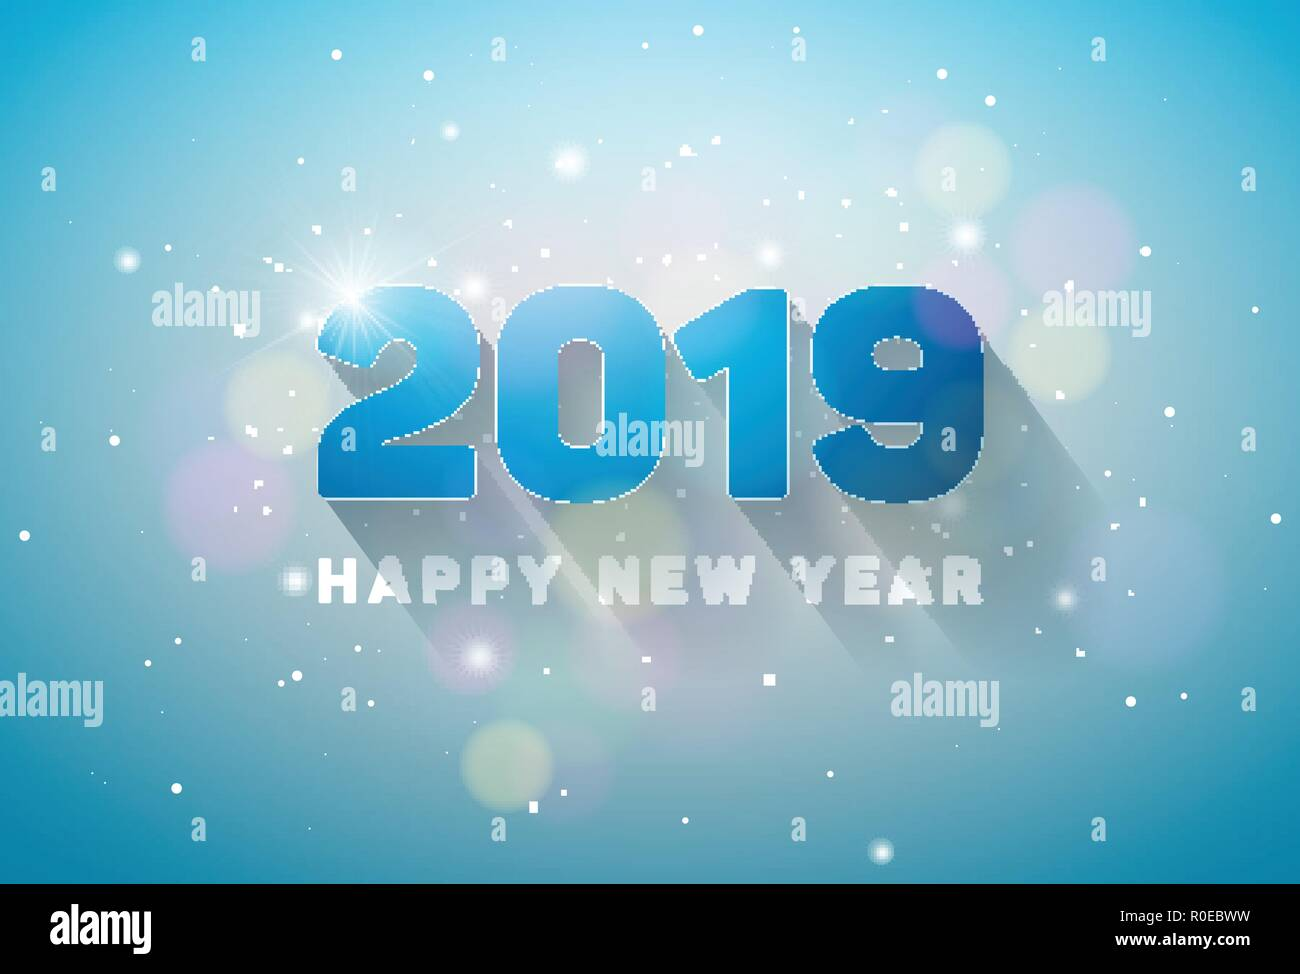 happy new year 2019 illustration with 3d number on shiny lighting blue background vector holiday design for flyer greeting card banner